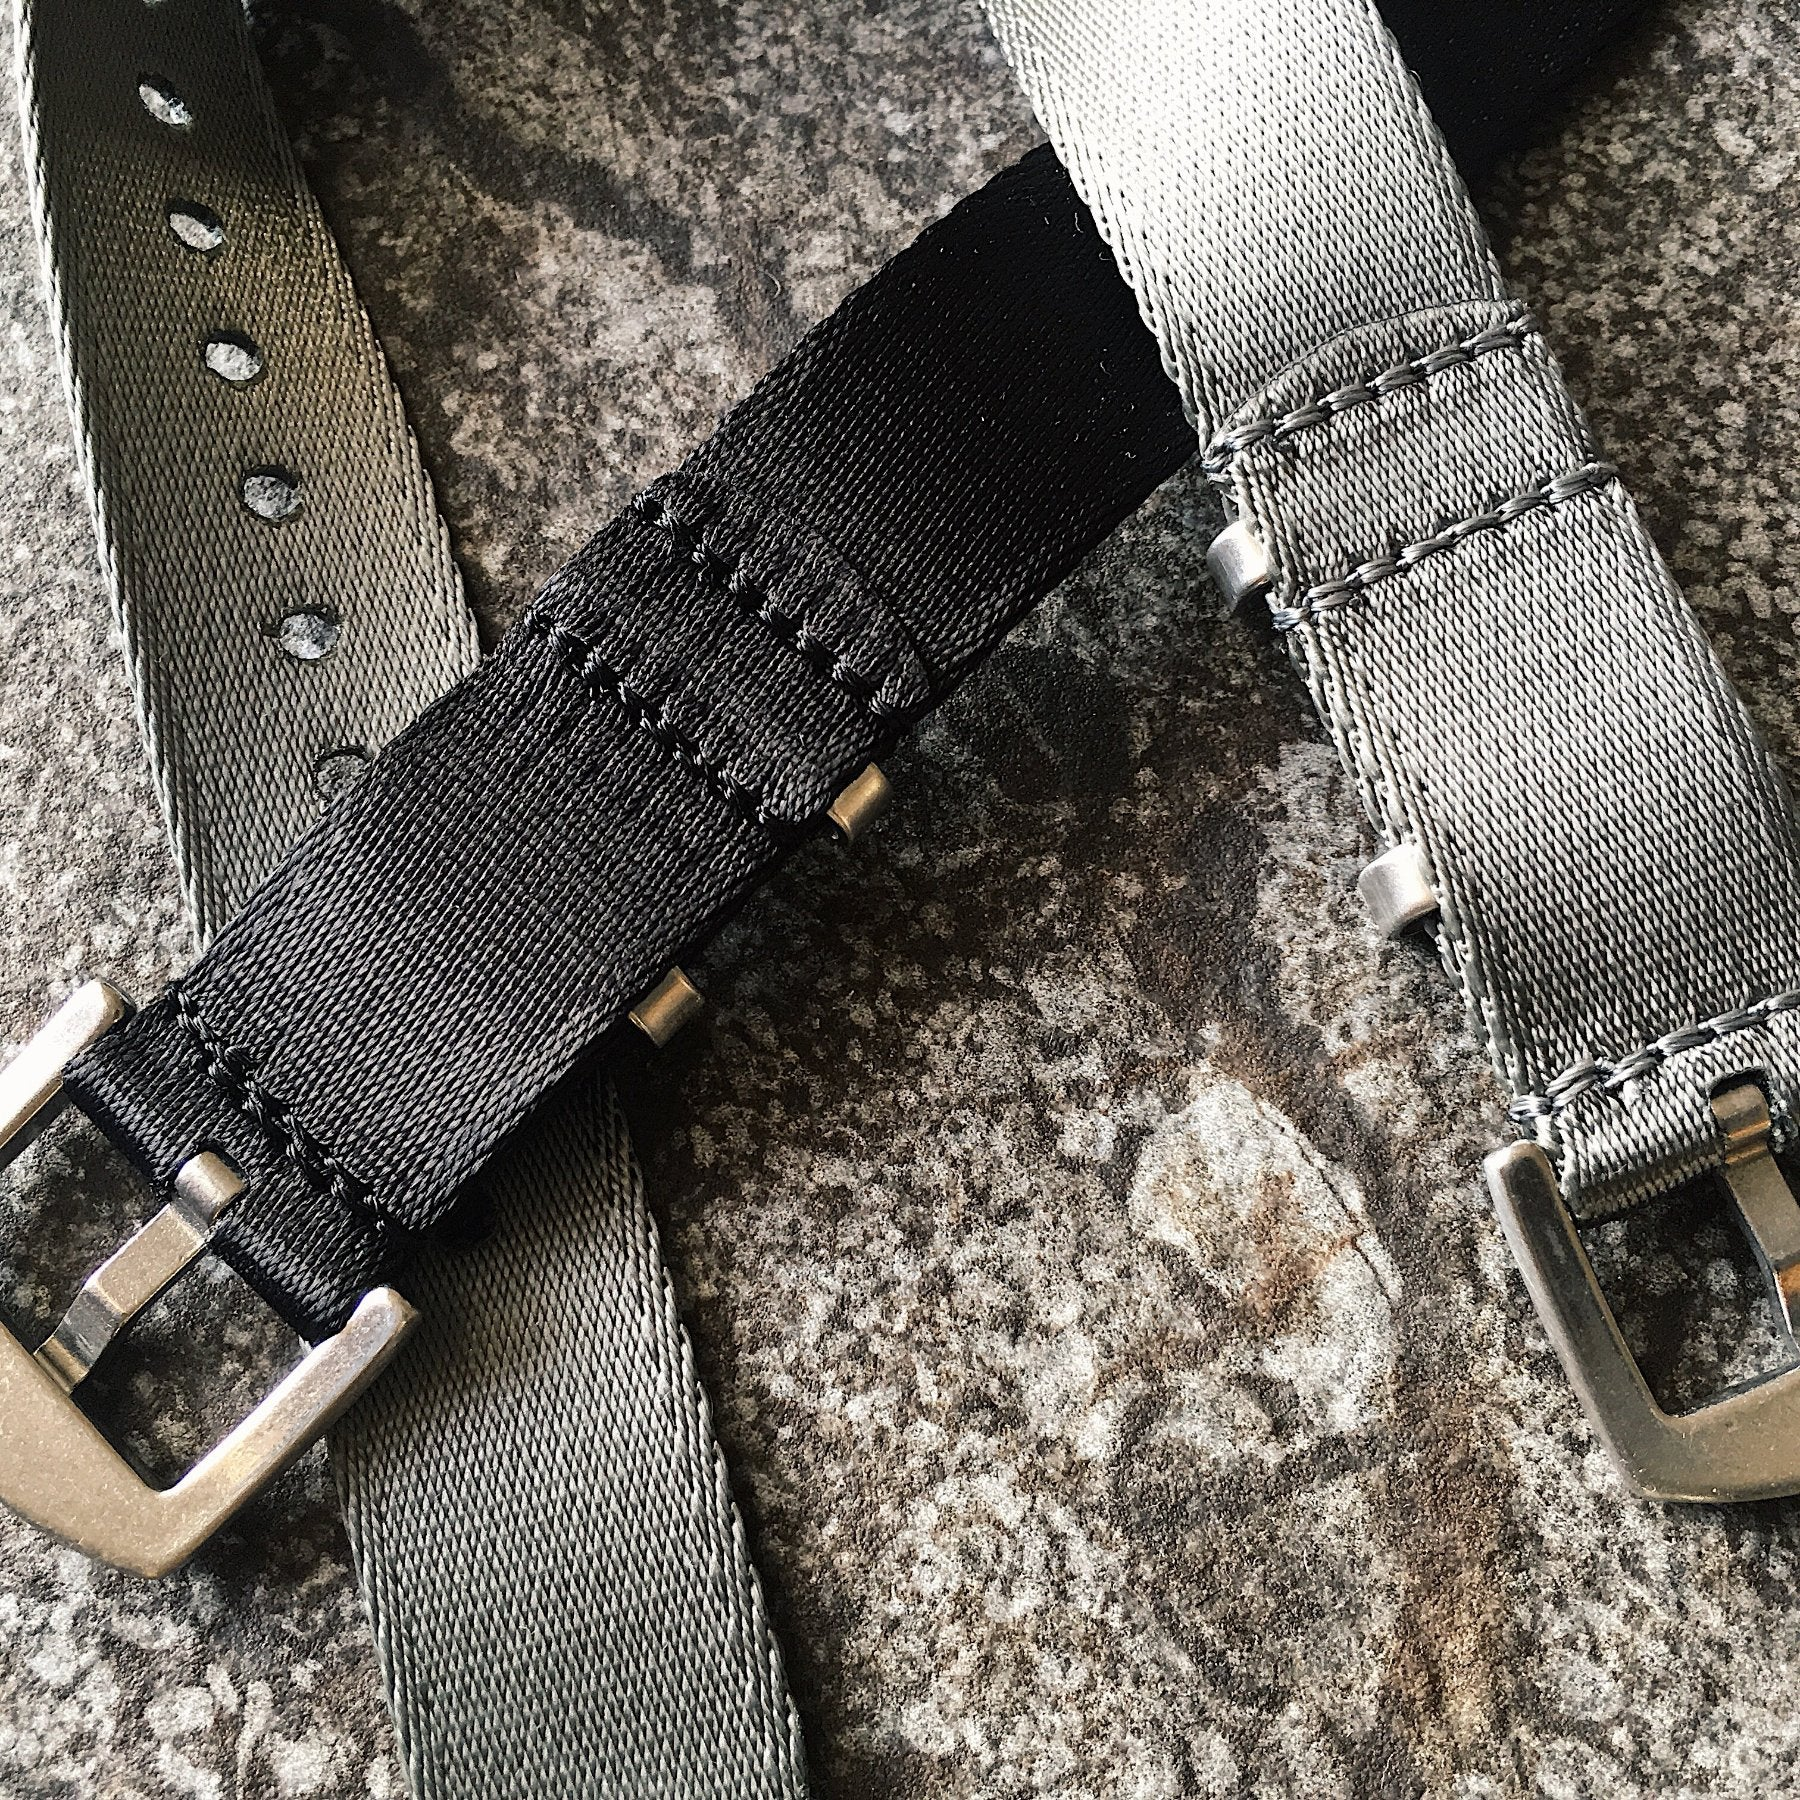 Premium Quality G10 NATO Watch Straps by Armilla